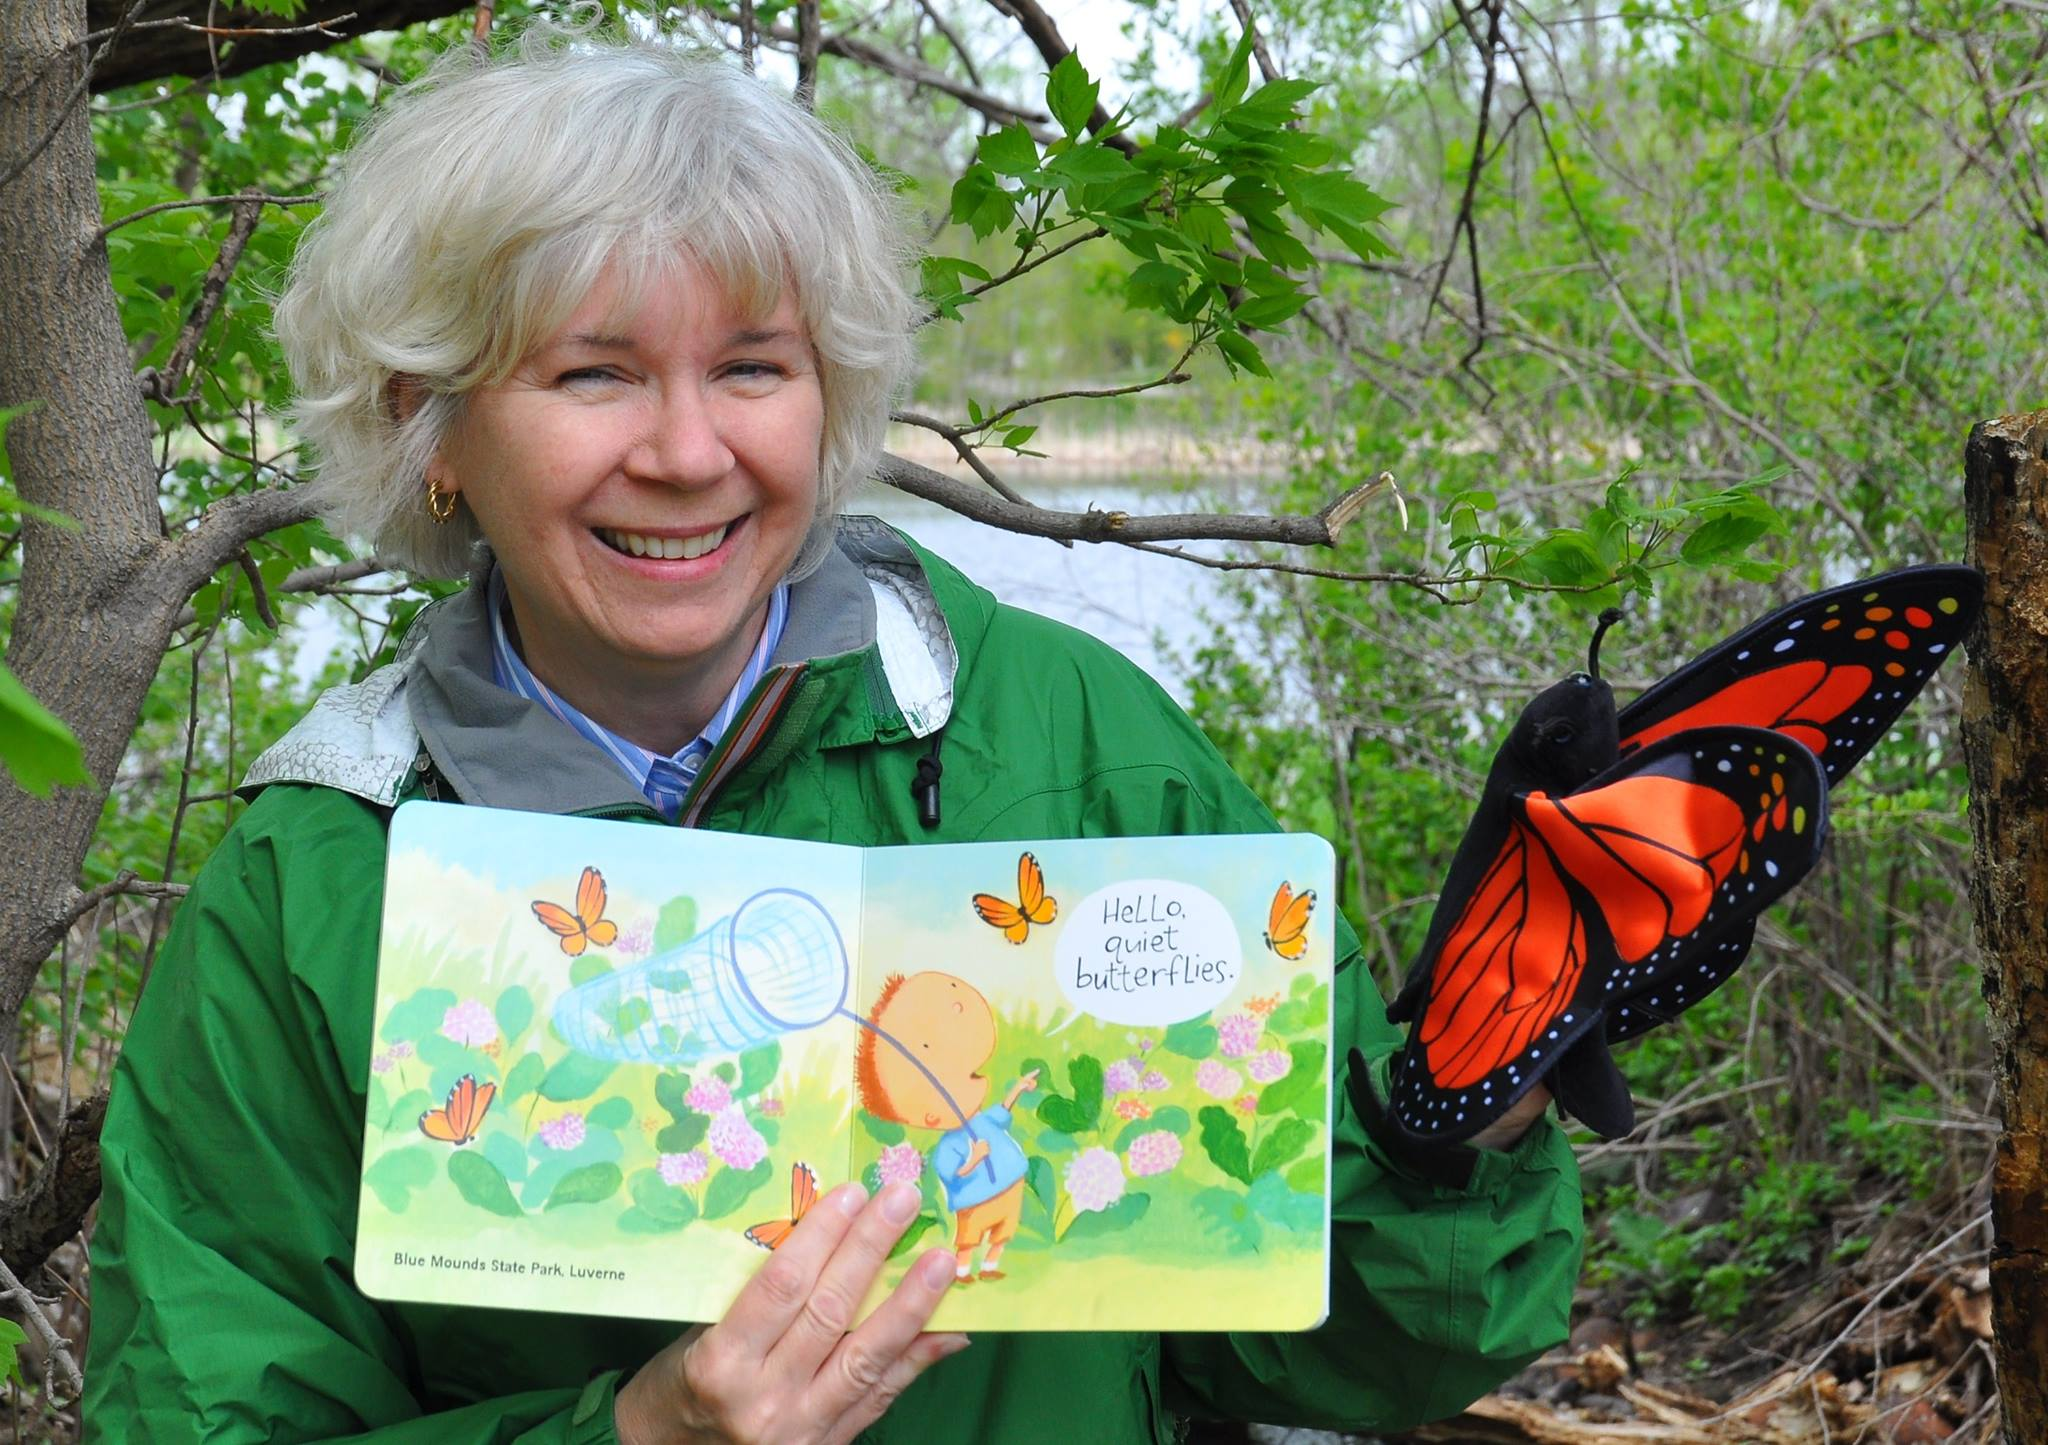 Connie Van Hoven with Hello, Minnesota! and butterfly